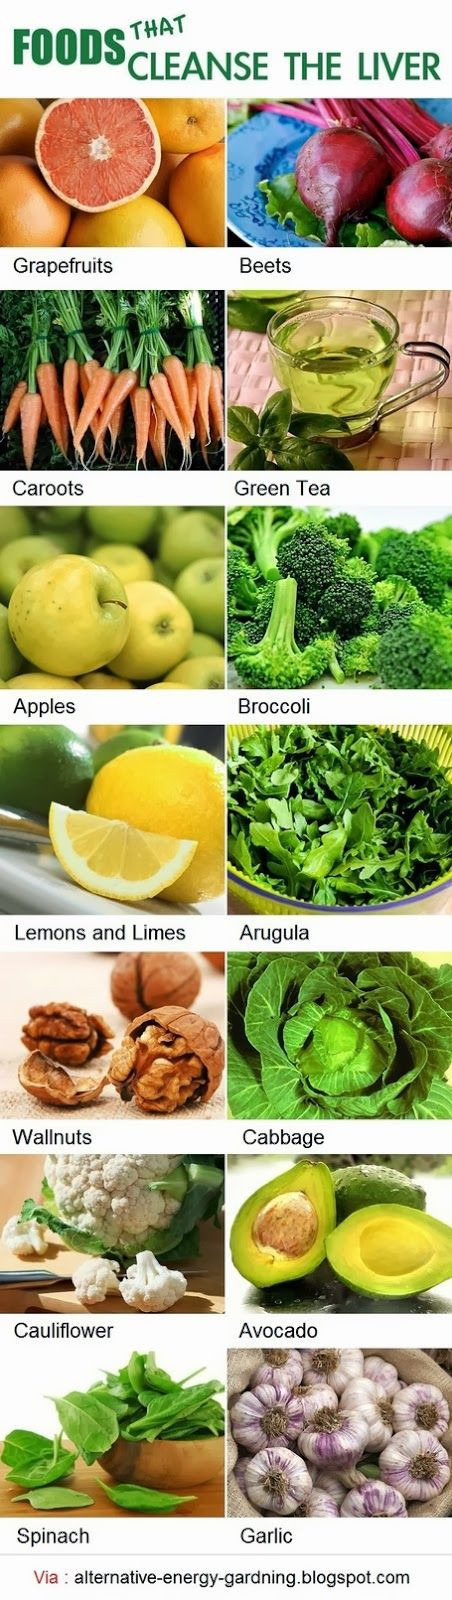 Alcohol detox smoothie – Weight Loss Plans: Keto N...